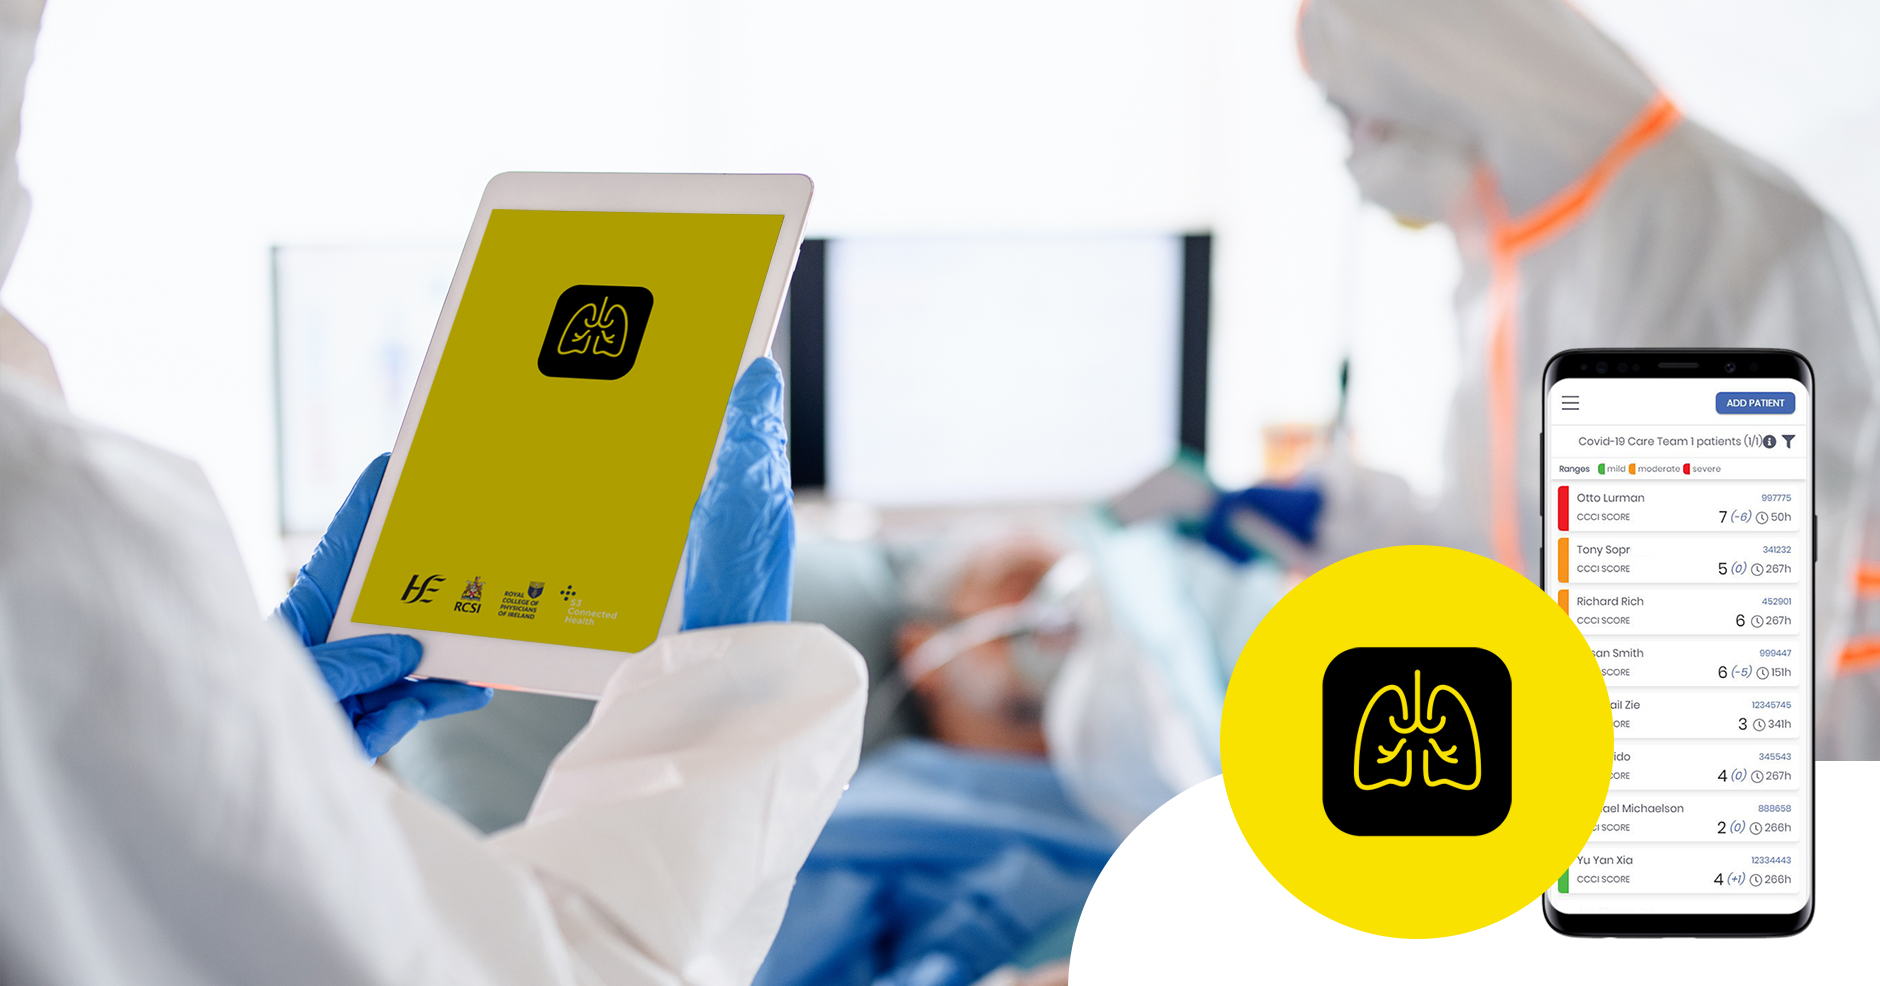 New clinical support tool helps Irish hospitals optimize and scale acute respiratory care for COVID-19 patients